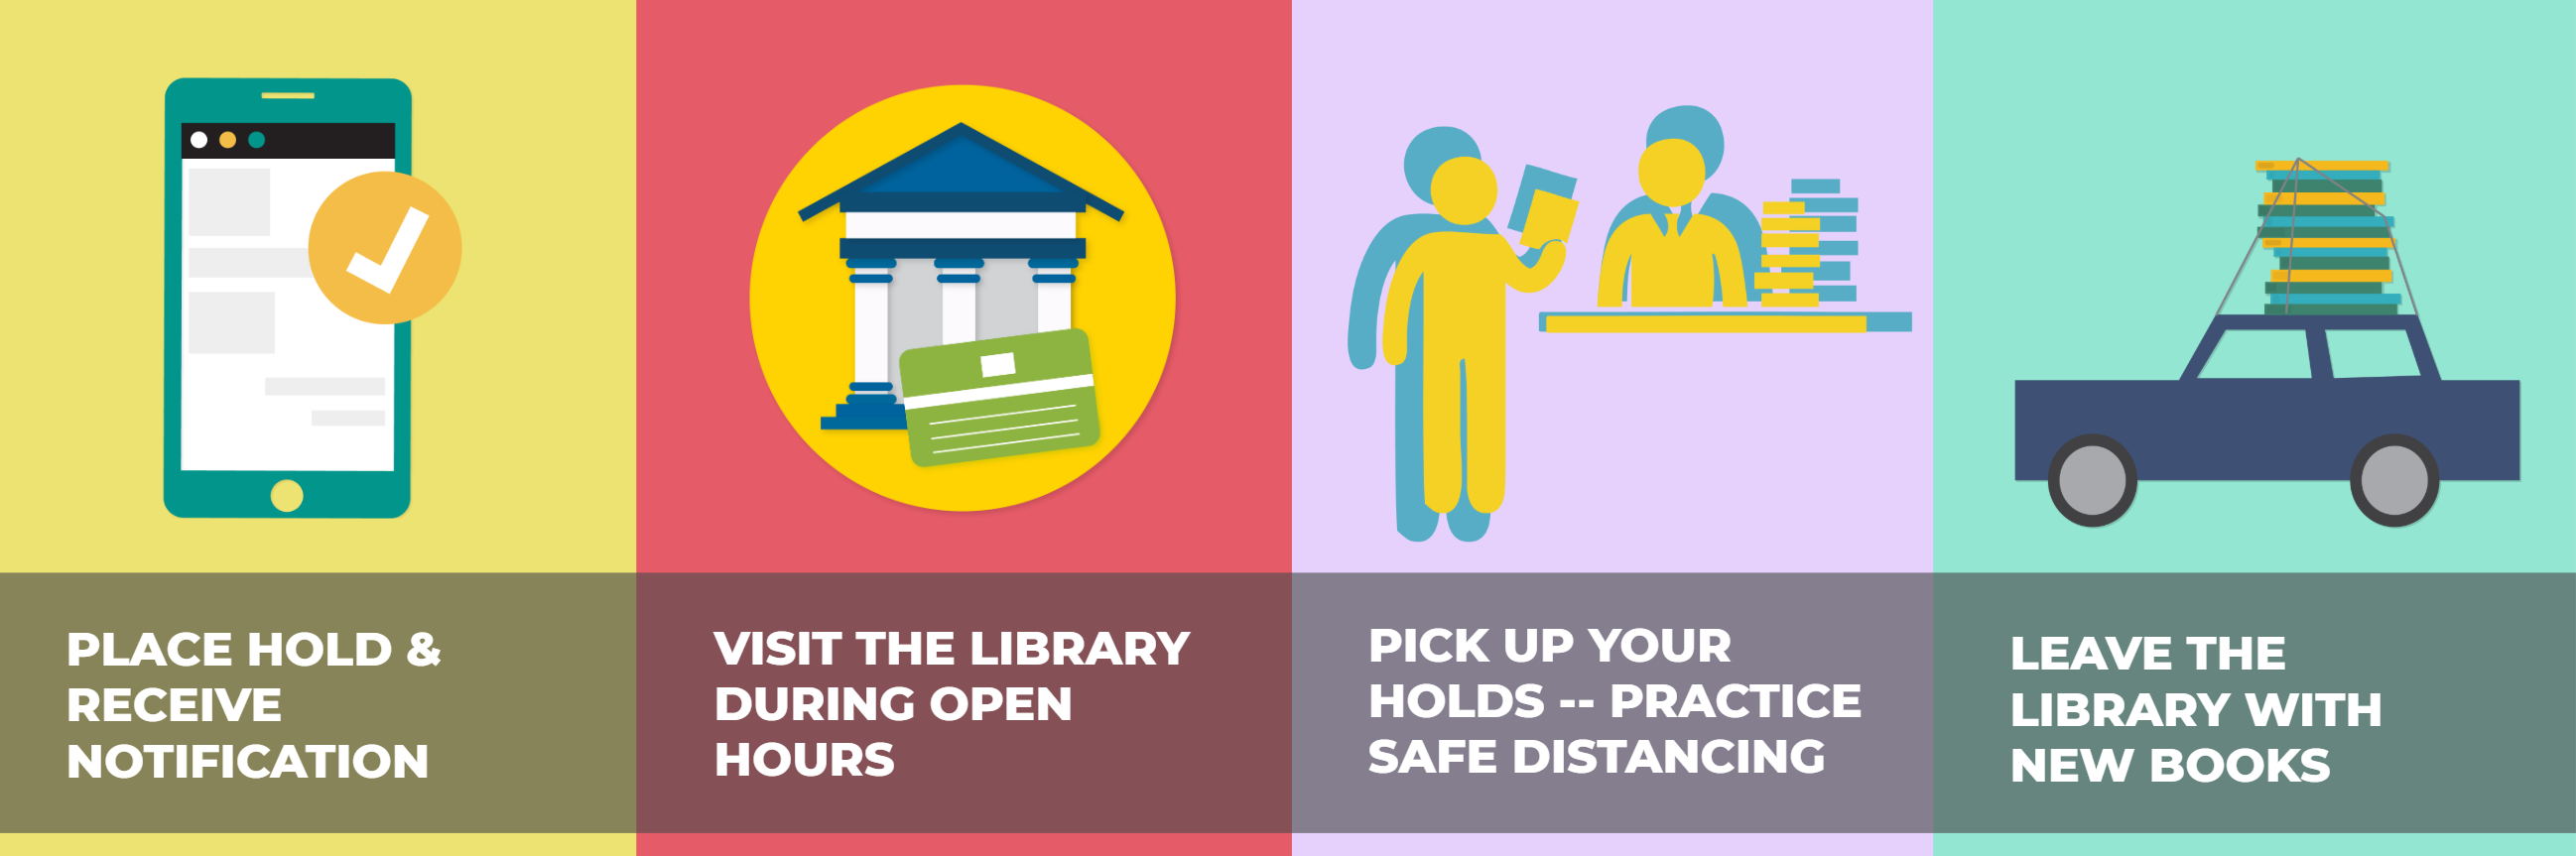 1) Place your hold and receive a notification. 2) Visit the library with your library card. 3) Pick up your holds practicing safe distancing. 4) Return home with new books.